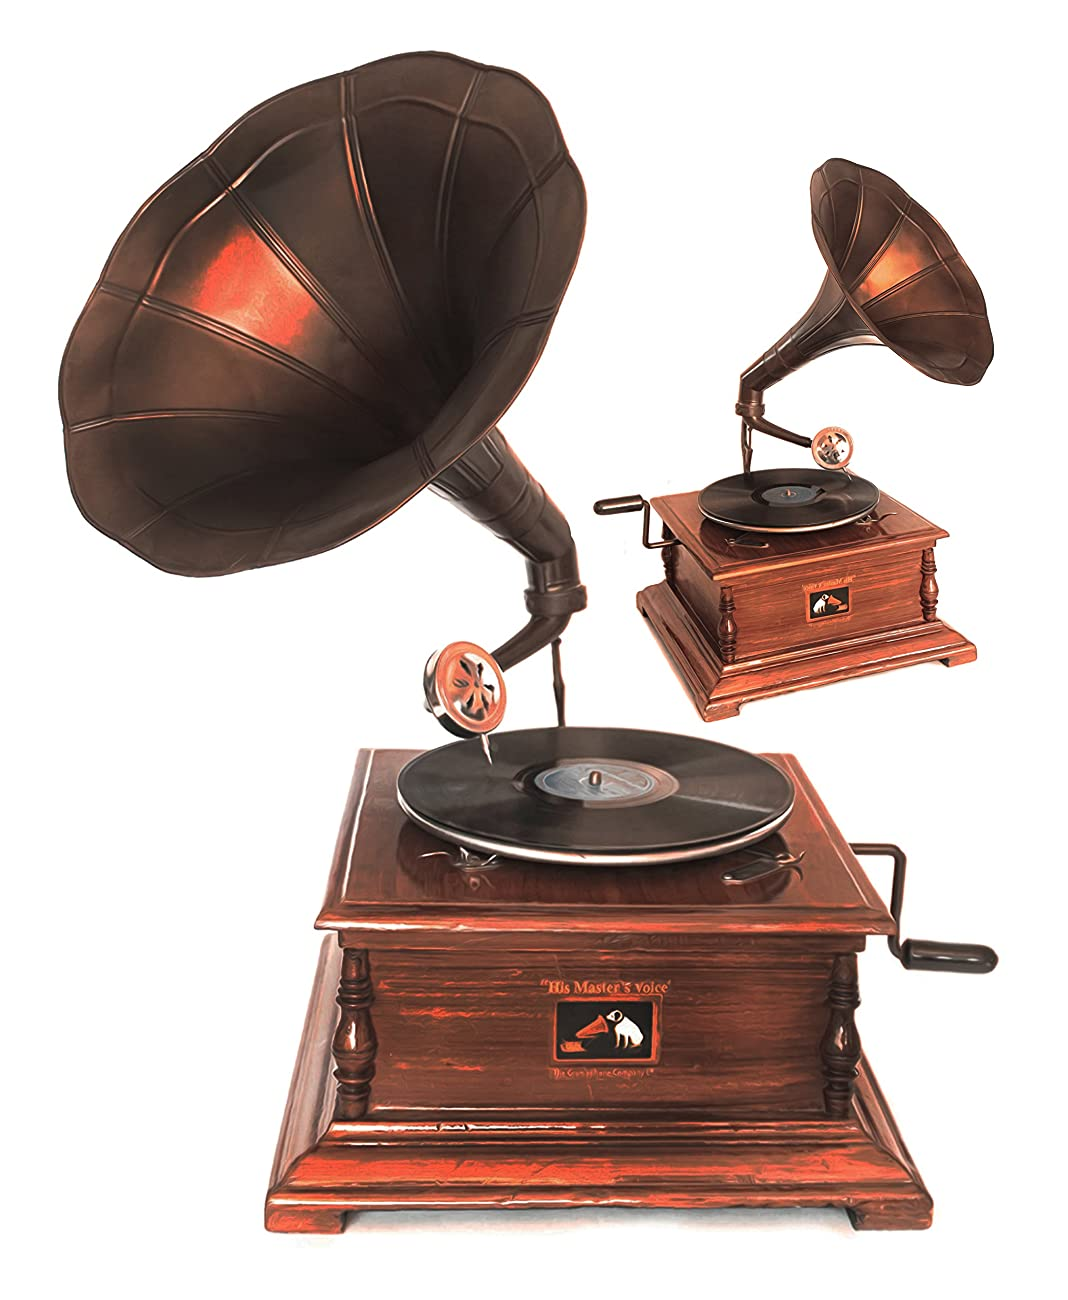 WinnerBrown Home Décor Metal Wood Brass Antique Finish Gramophone Record Player, 27 inch 4